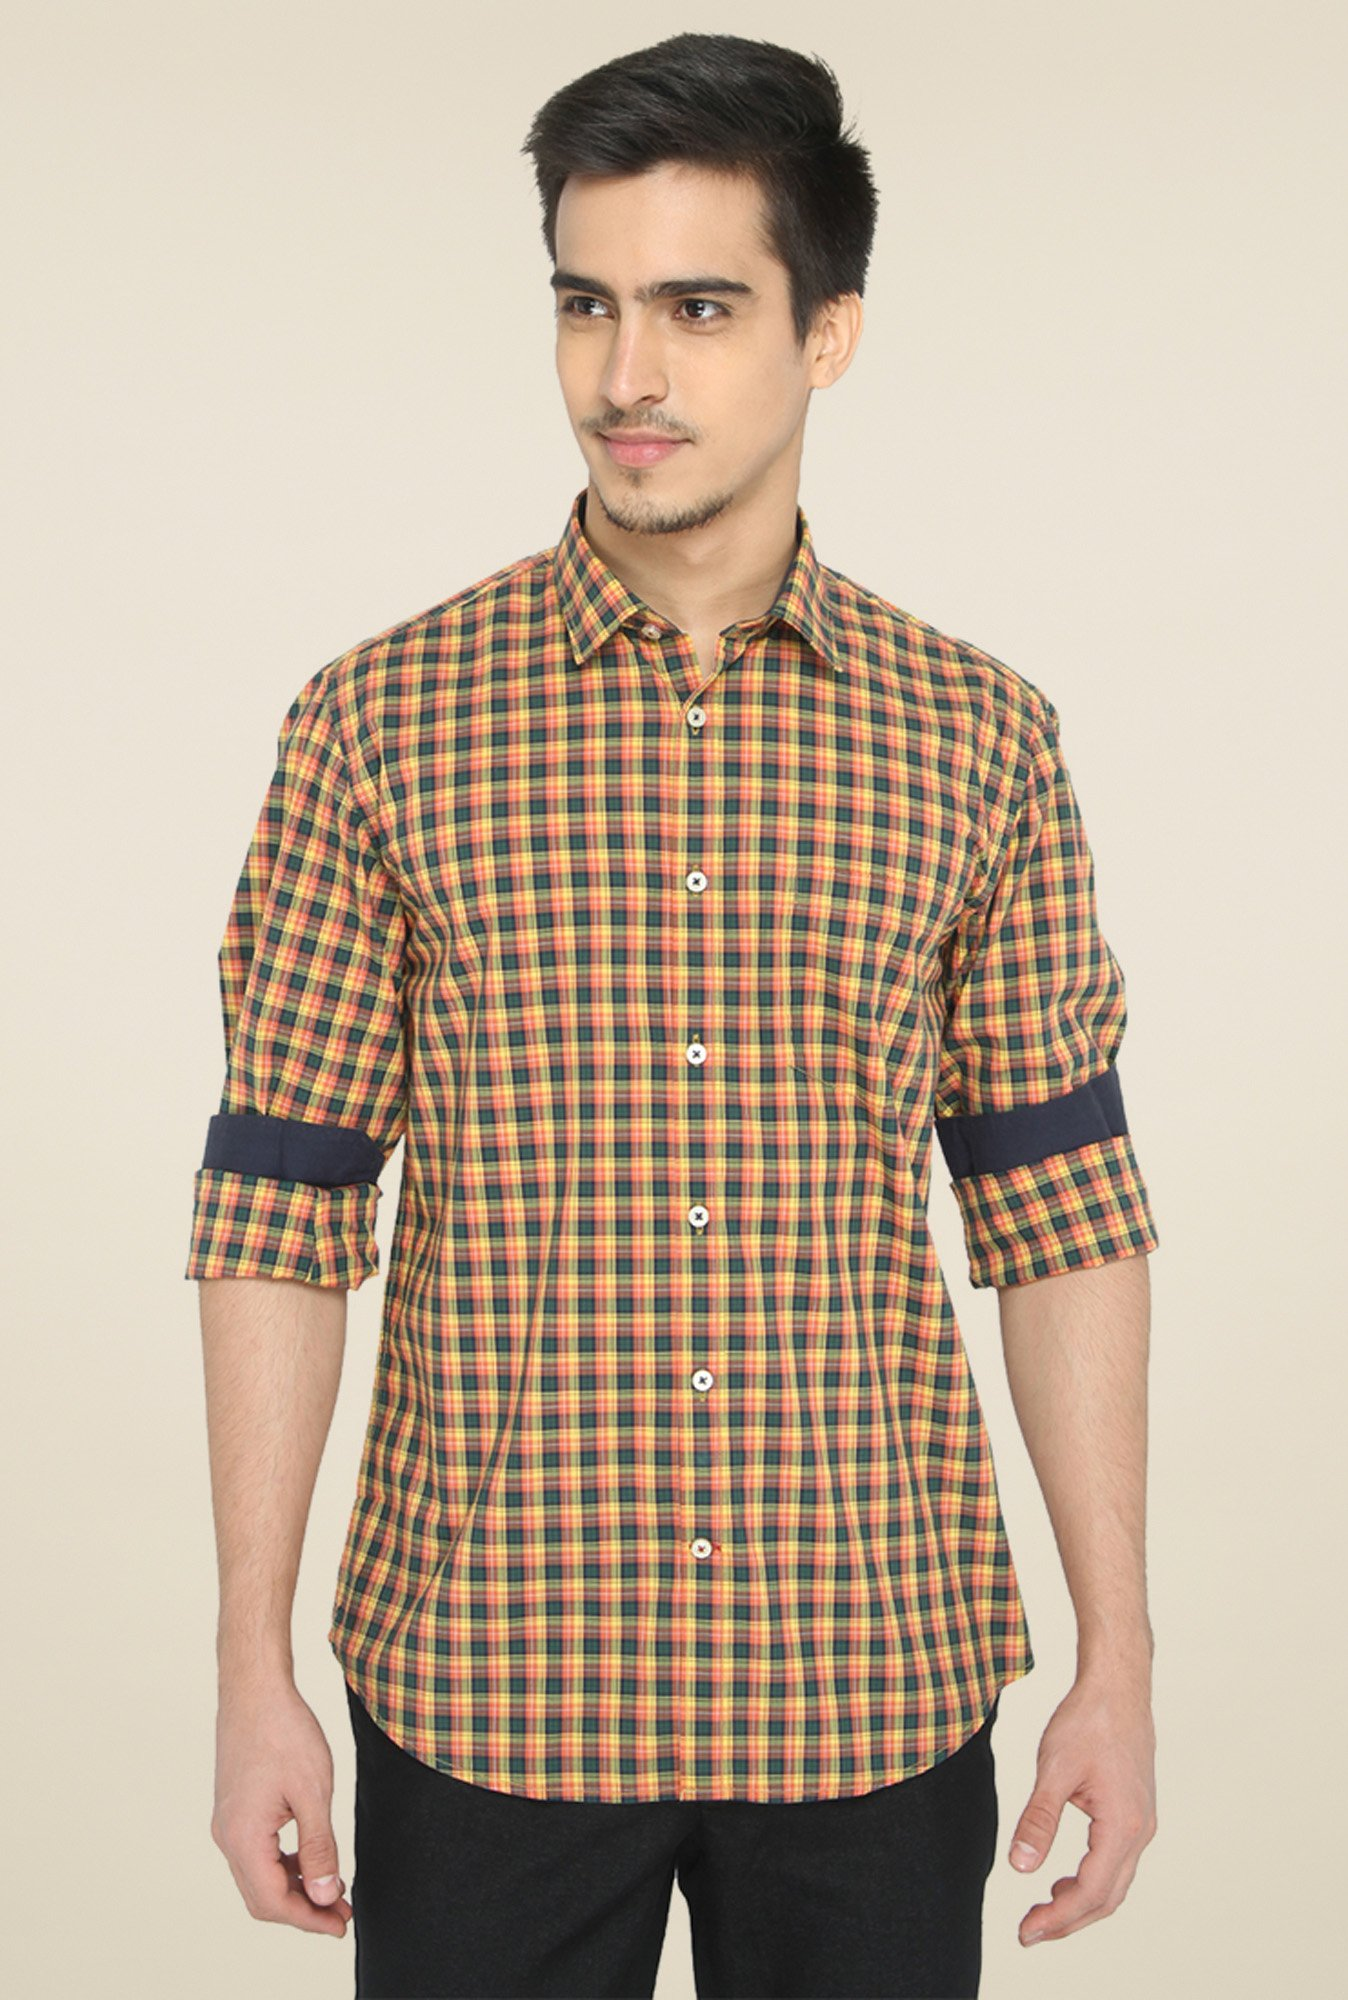 Jadeblue Yellow & Black Regular Fit Shirt